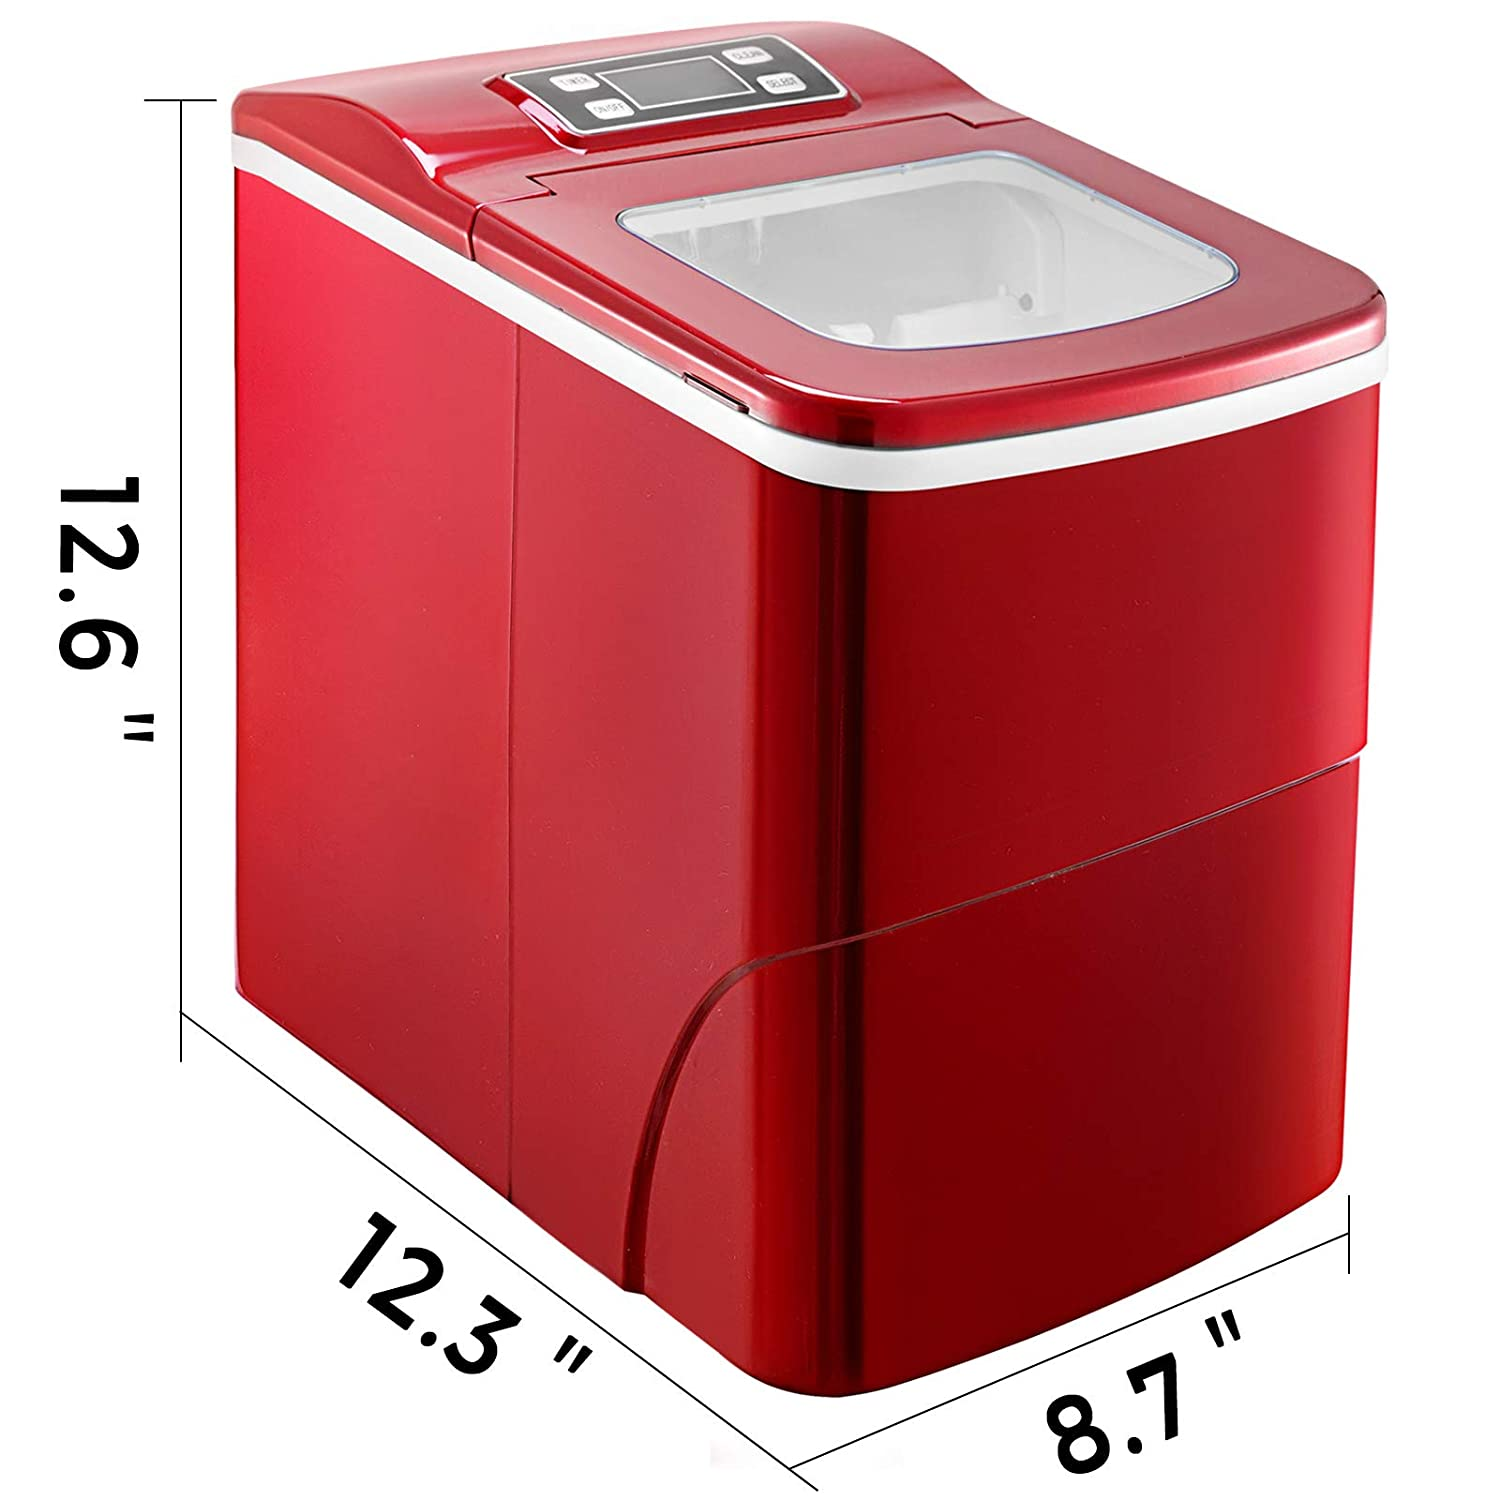 VBENLEM 26LBS//24H Portable Ice Making Machine Countertop Bullet Ice Maker with Control Panel Ice Scoop Great for Home Kitchen Bars Parties Commercial Use